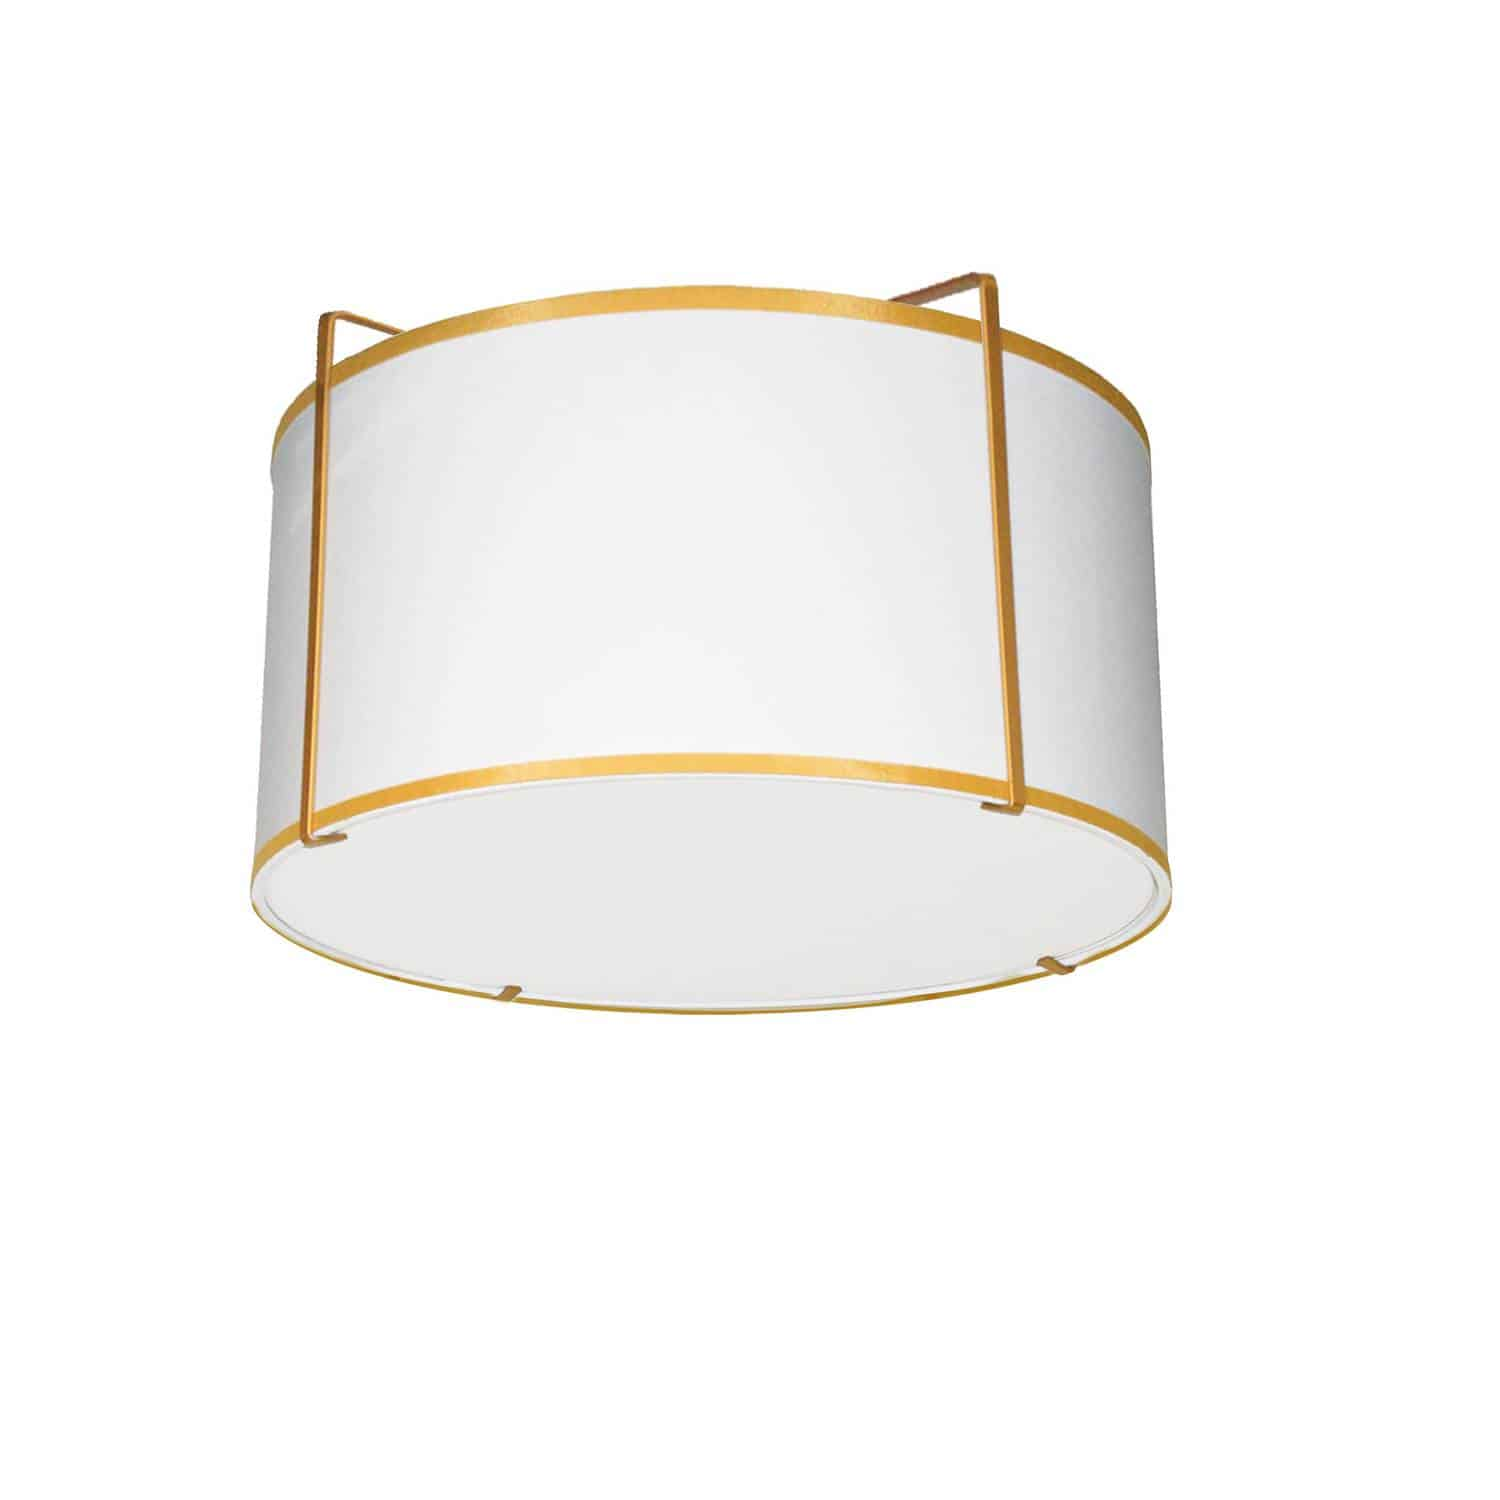 2 Light Flush Mount Drum Gold/White Shade w/ White Fabric Diffuser